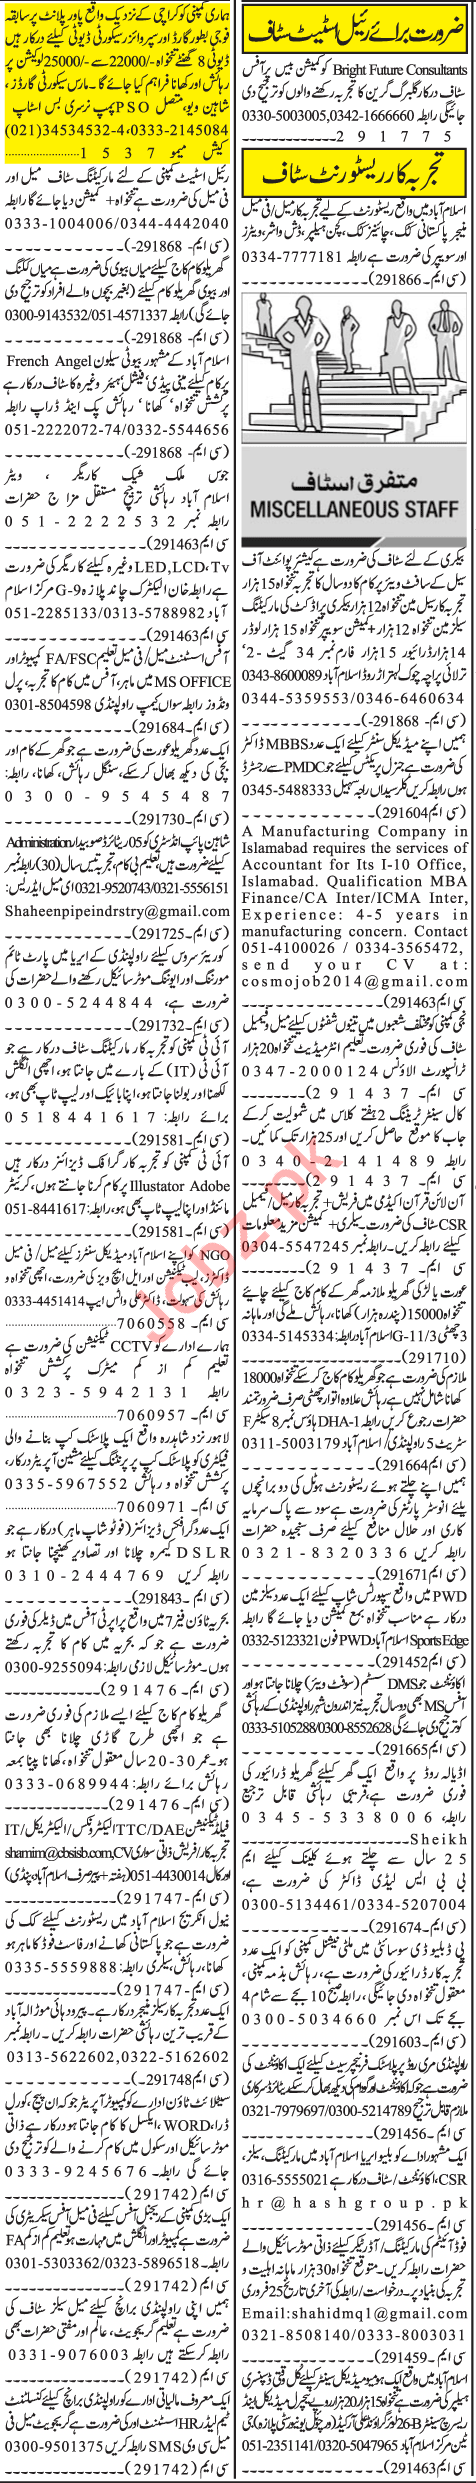 Jang Sunday Classified Ads 17th Feb 2019 for Multiple Staff